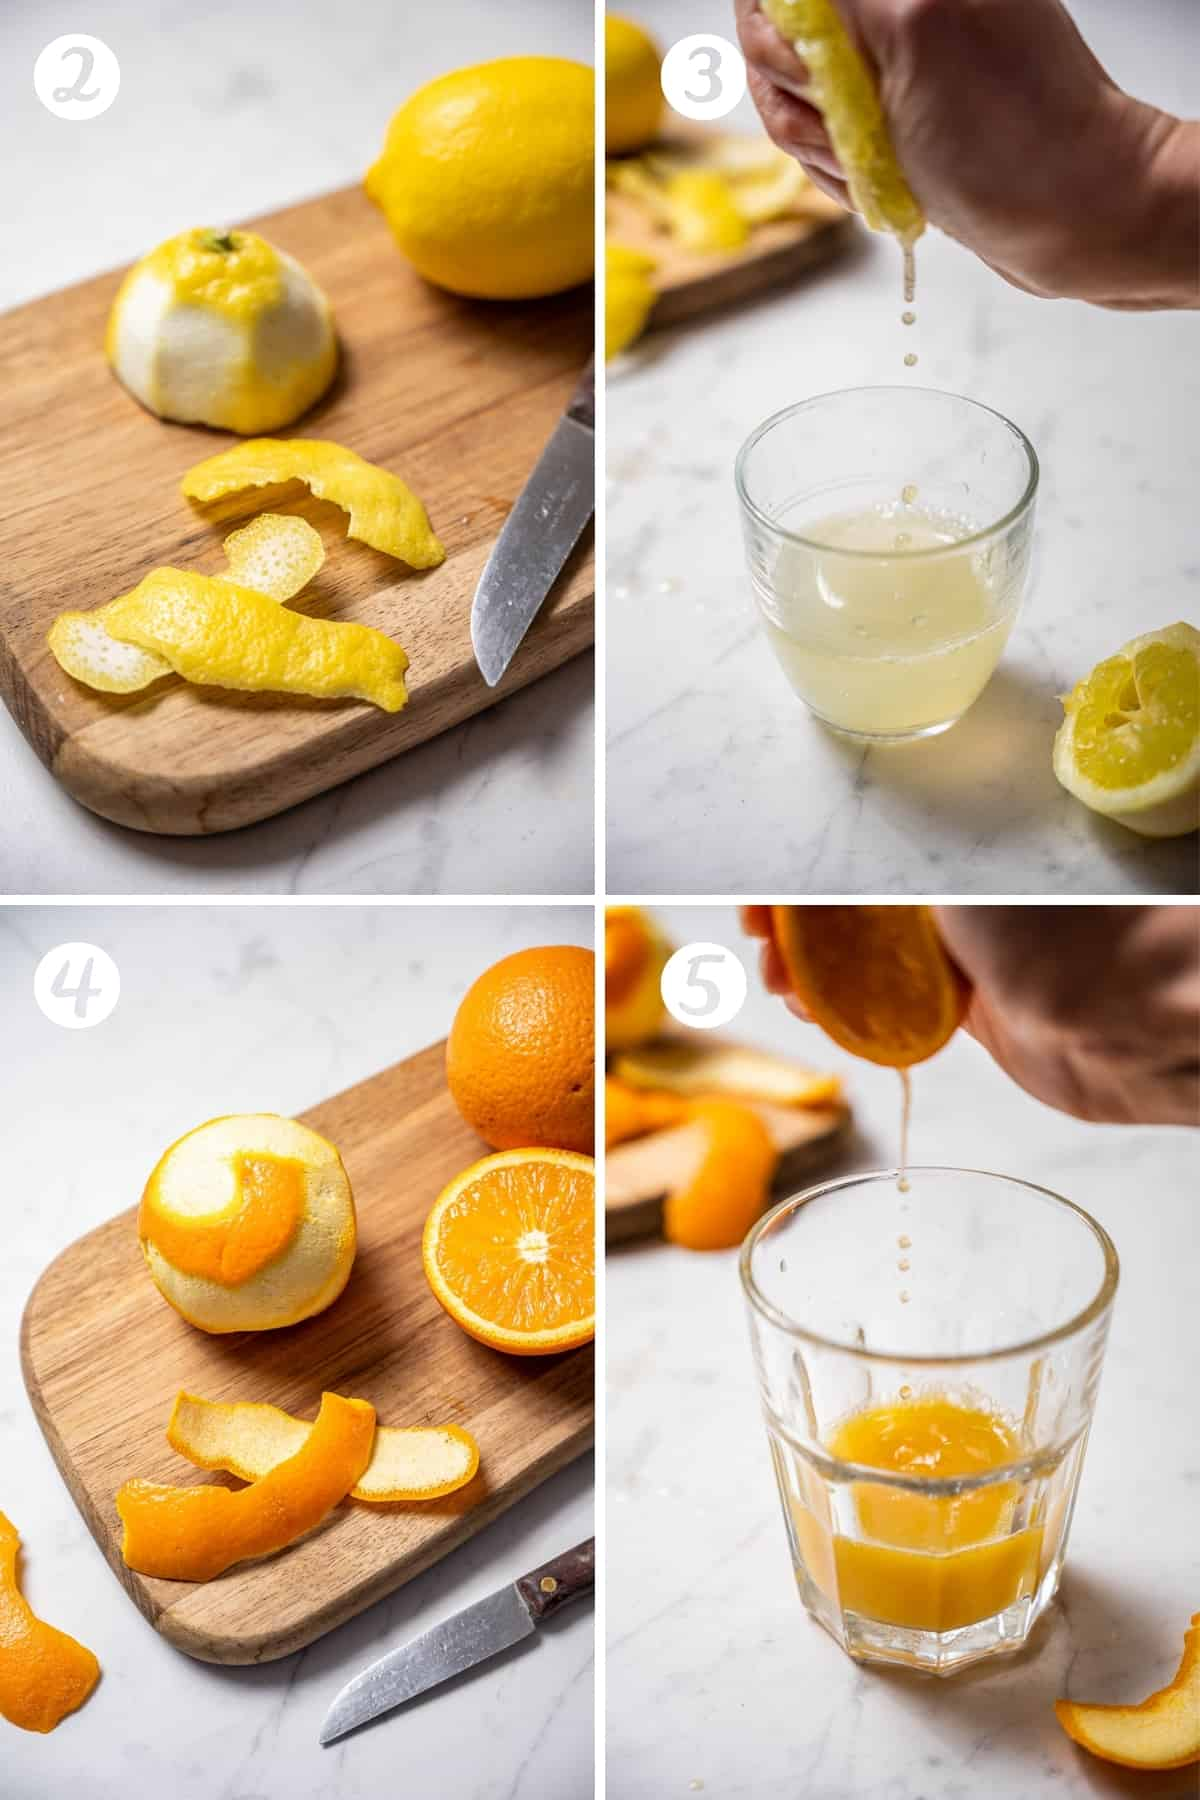 A grid of four photos showing peeling the rind of lemons and oranges and juicing lemons and oranges.